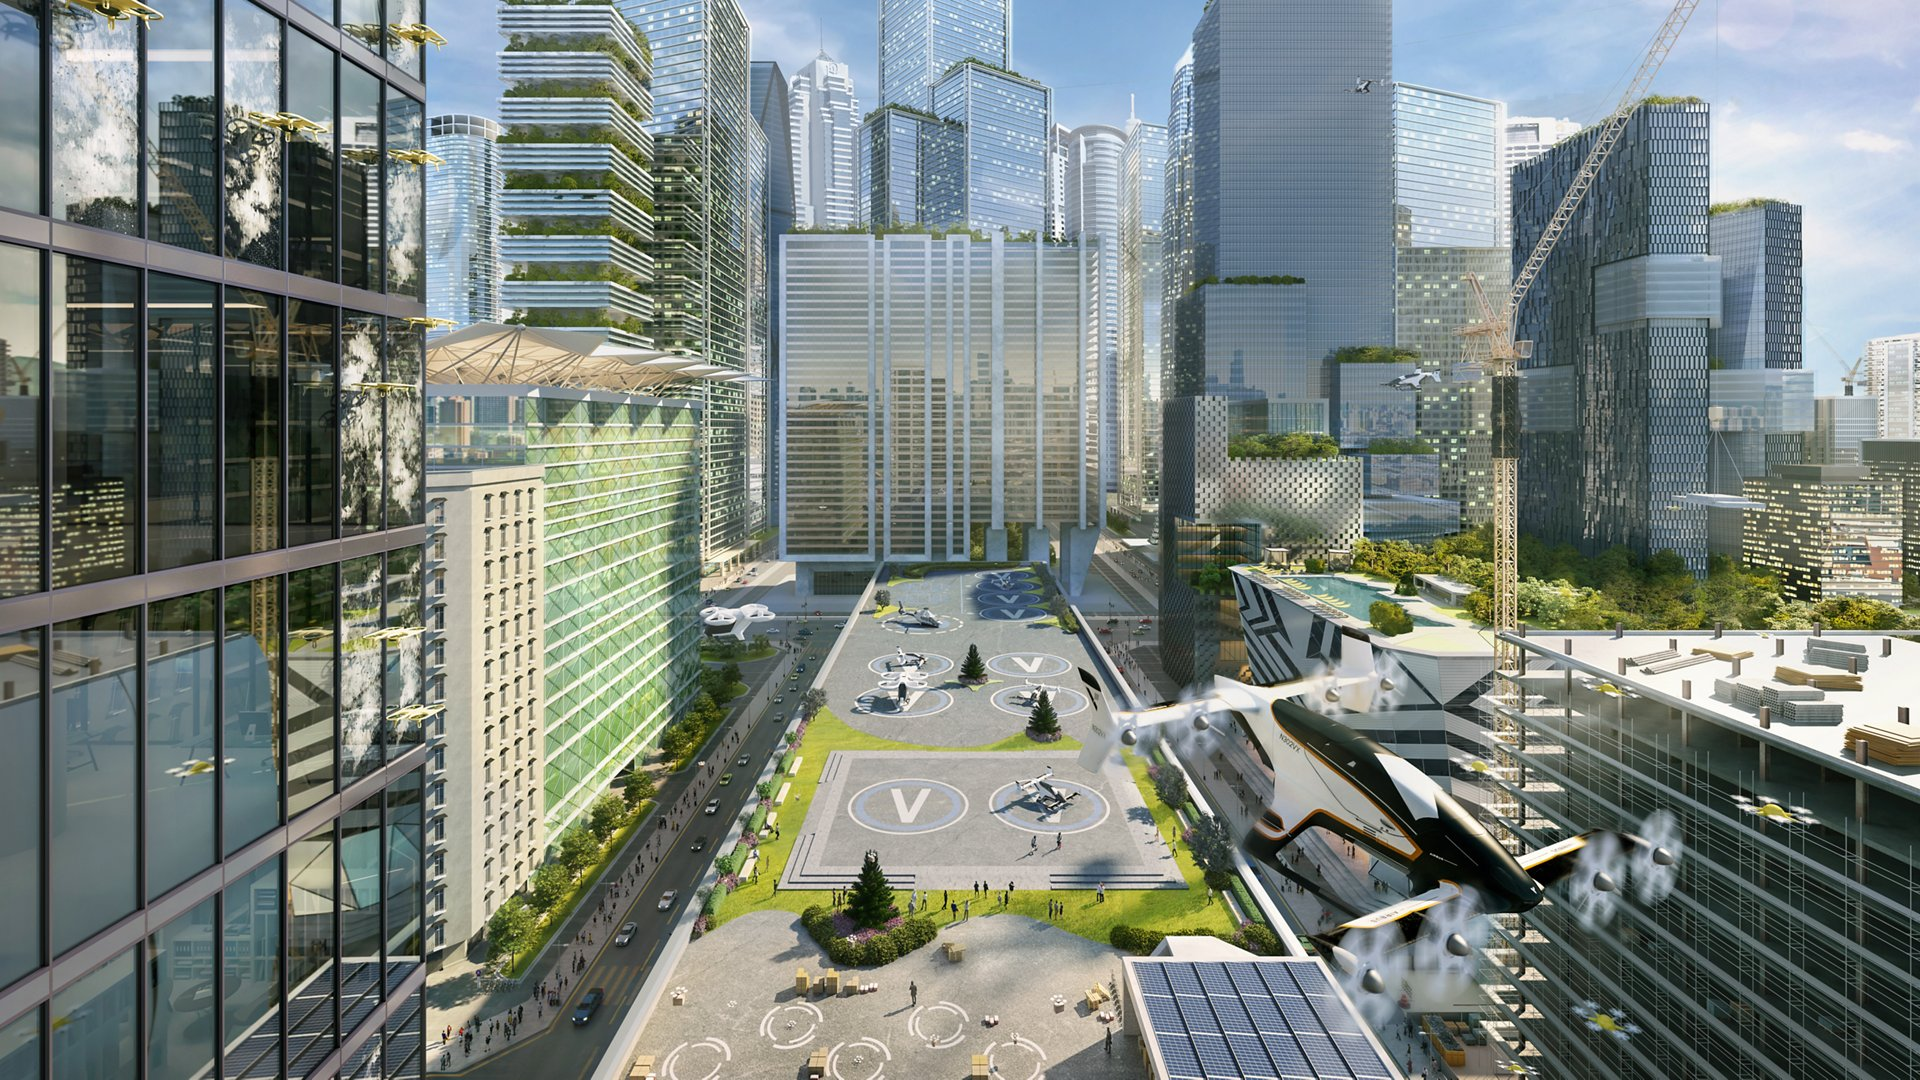 A representation of Airbus' innovative vision for urban air mobility.